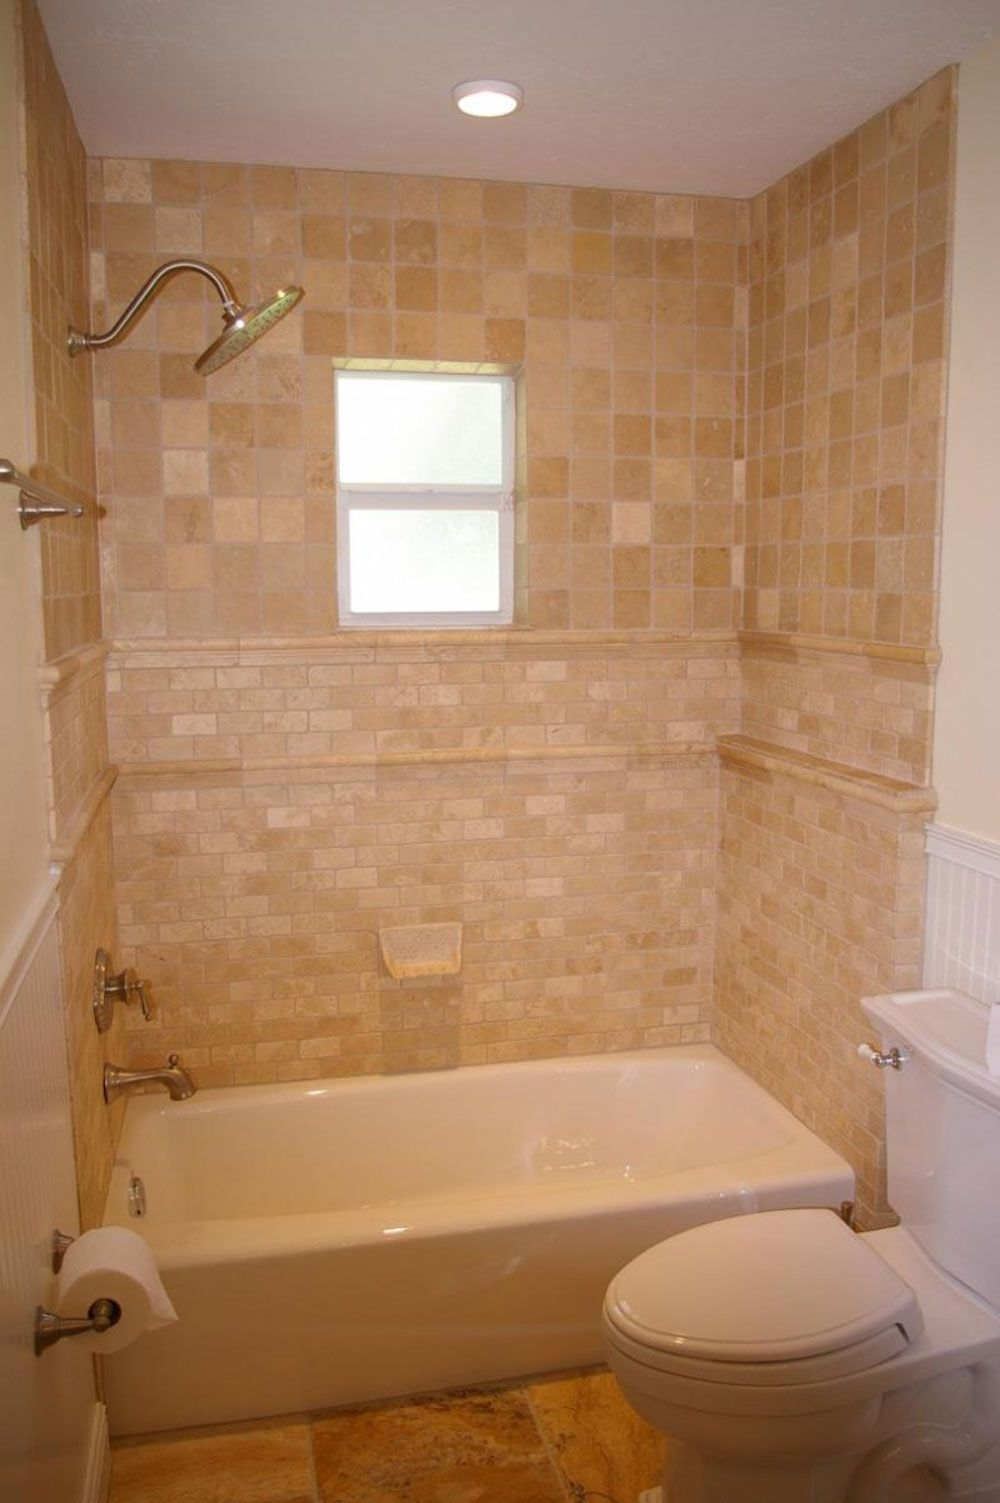 10  images about Small bathrooms on Pinterest   Shower doors  Bathroom ideas and Tiny half bath. 10  images about Small bathrooms on Pinterest   Shower doors